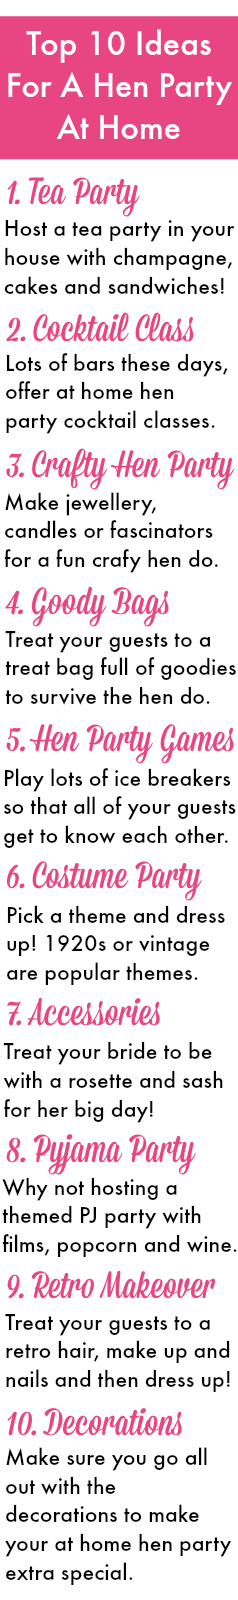 top 10 ideas for a hen party at home here are our essentials